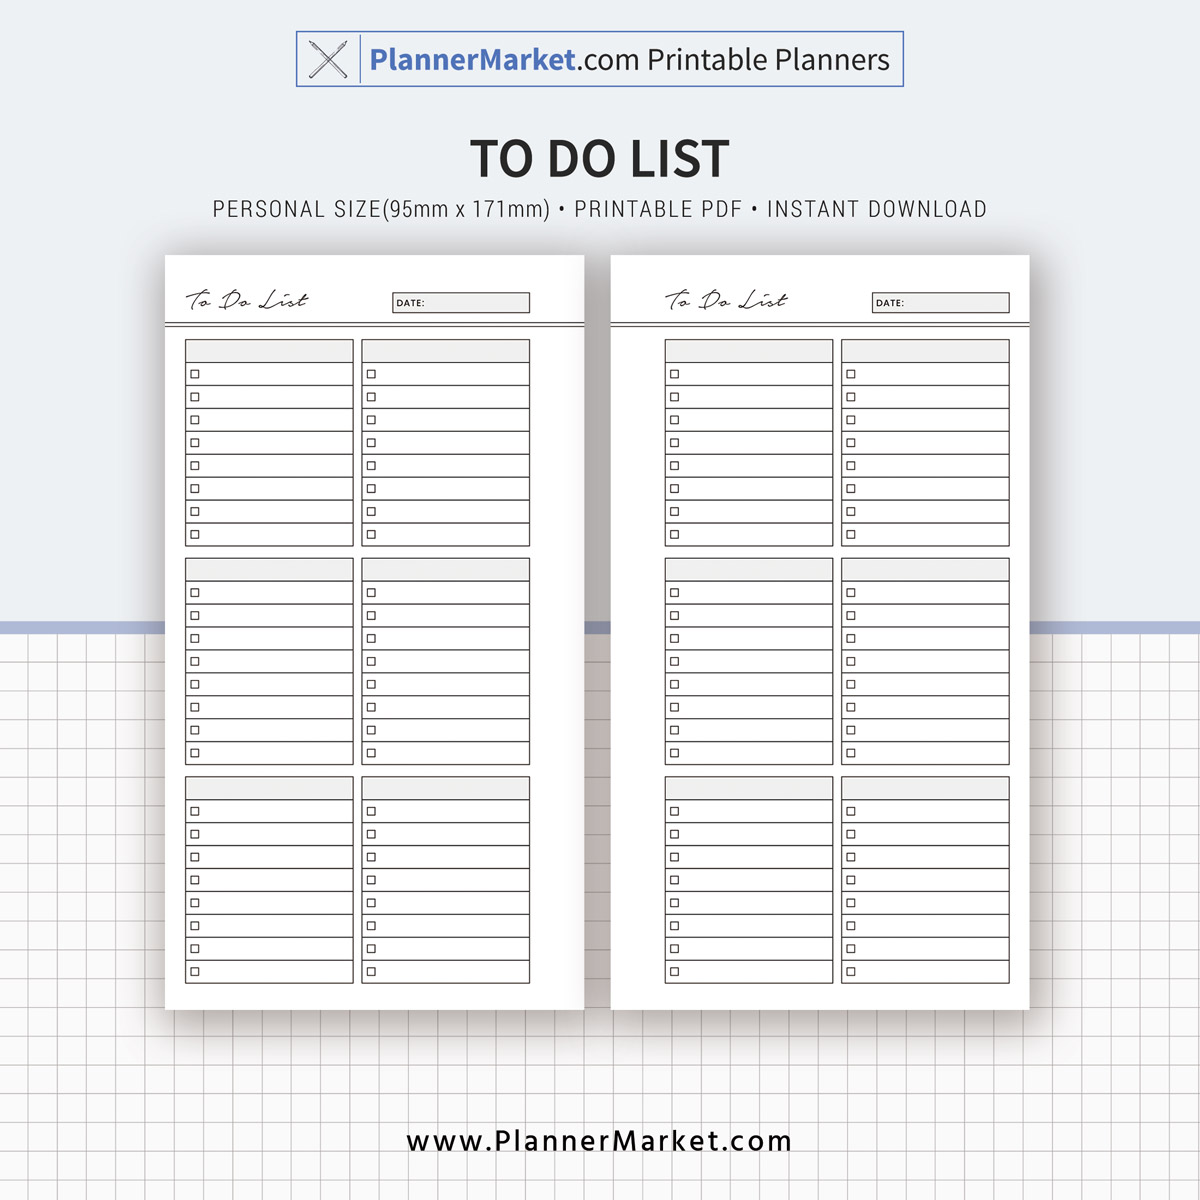 to do list, 2019 planner, personal size, planner inserts, planner